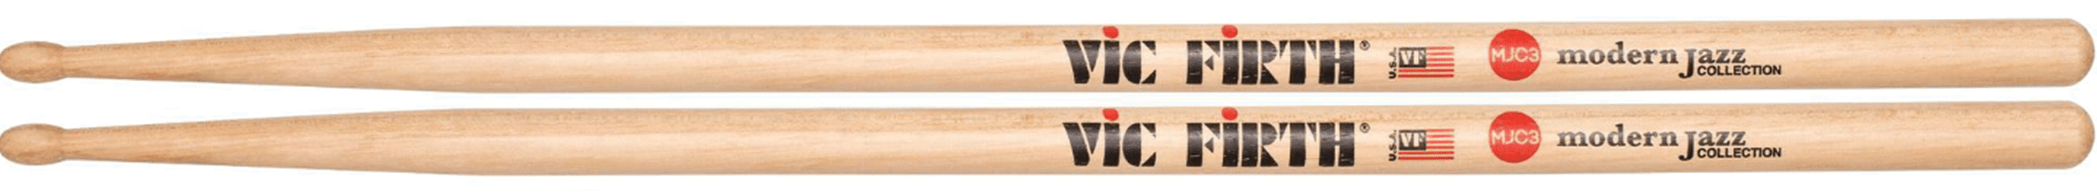 Vic Firth Modern Jazz Drum Stick MJC2